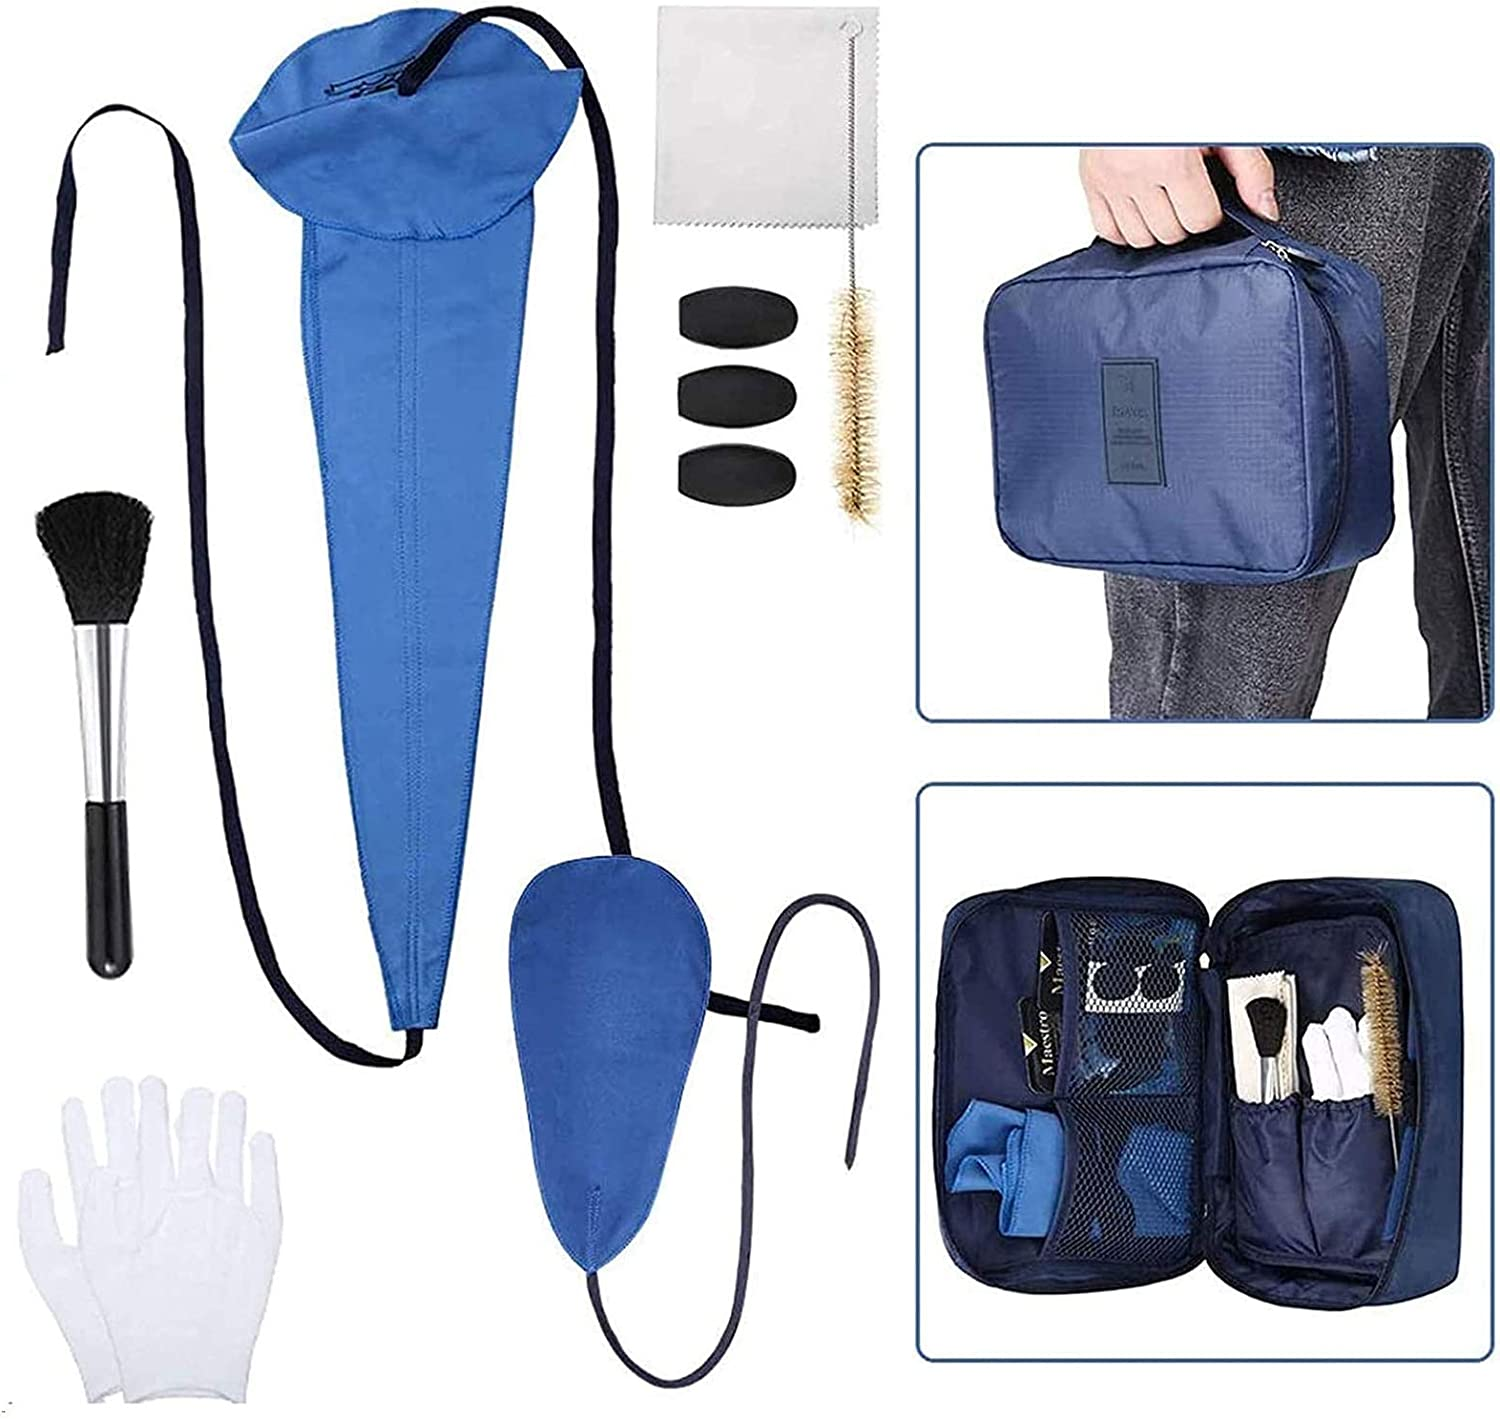 13PCS Saxophone Cleaning Kit with Bag for Flute,Alto Sax,Clarinet Instruments Cleaning Accessories Includes Cleaning Cloth,Mouthpiece Brush,Thumb Rest Cushion: Musical Instruments